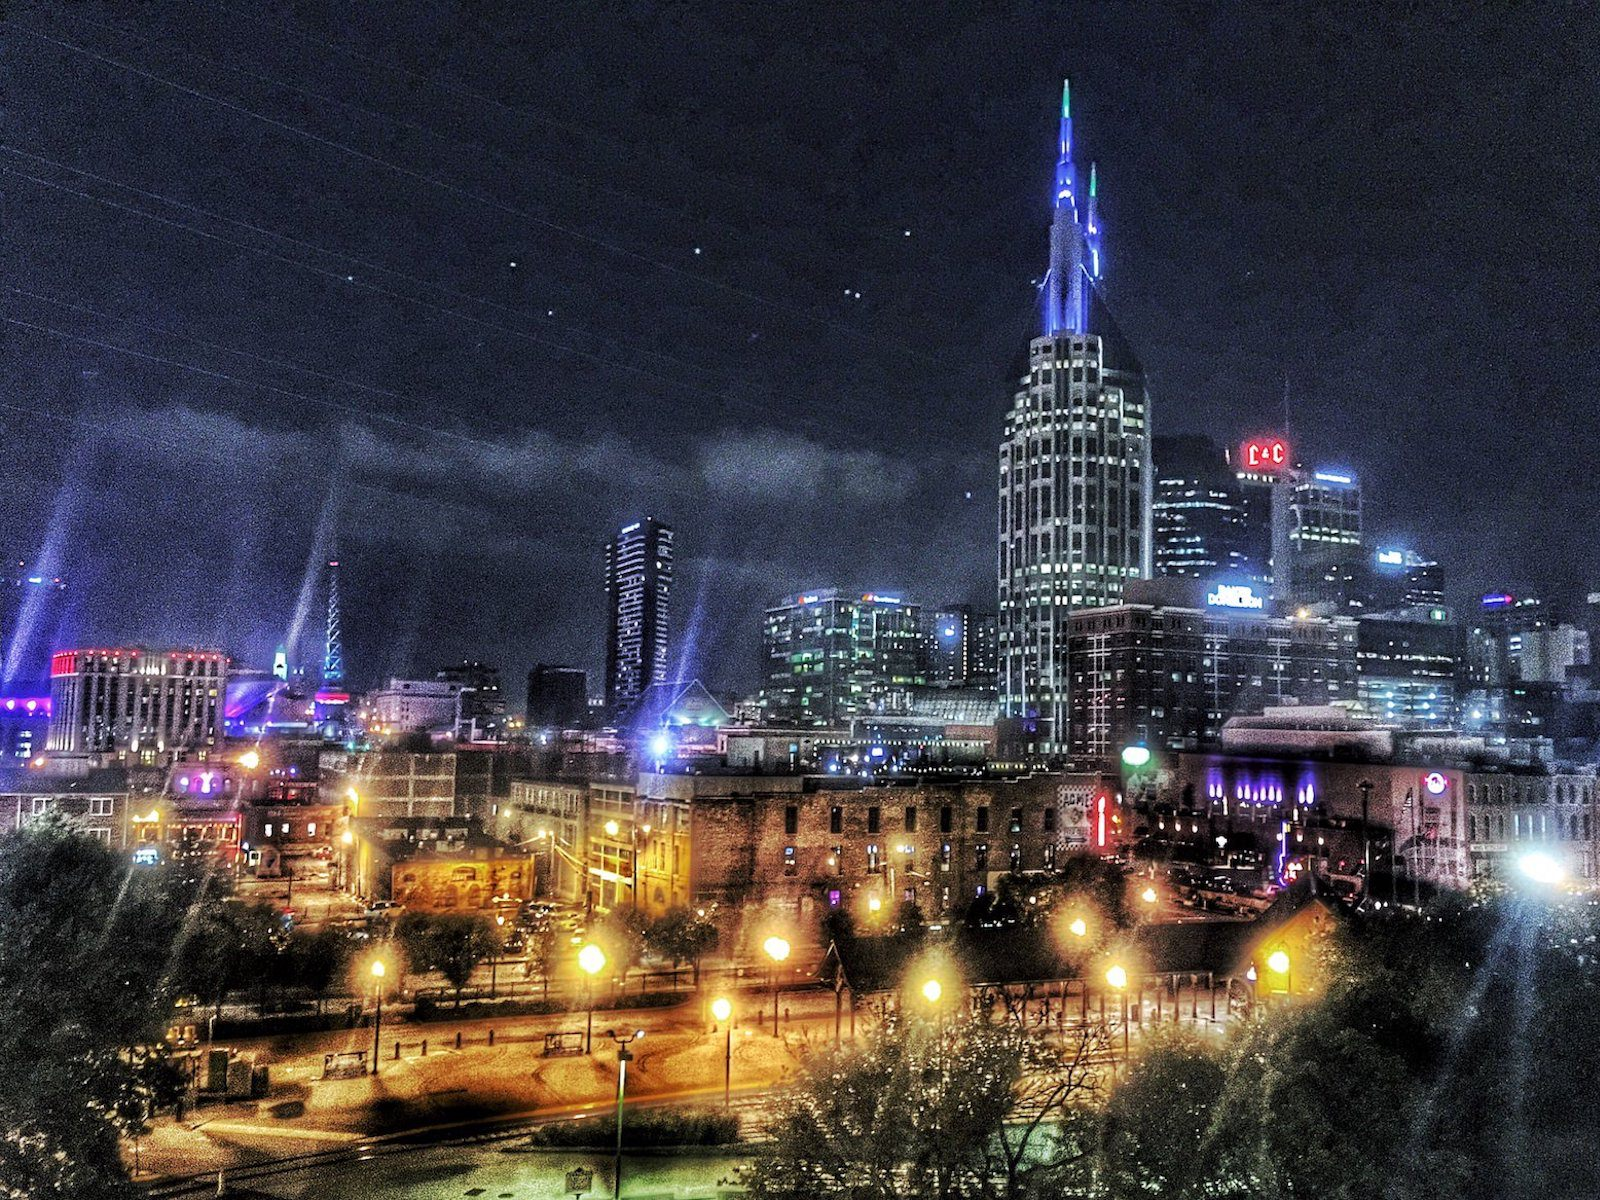 Edited image of Nashville skyline at night with river park in front.